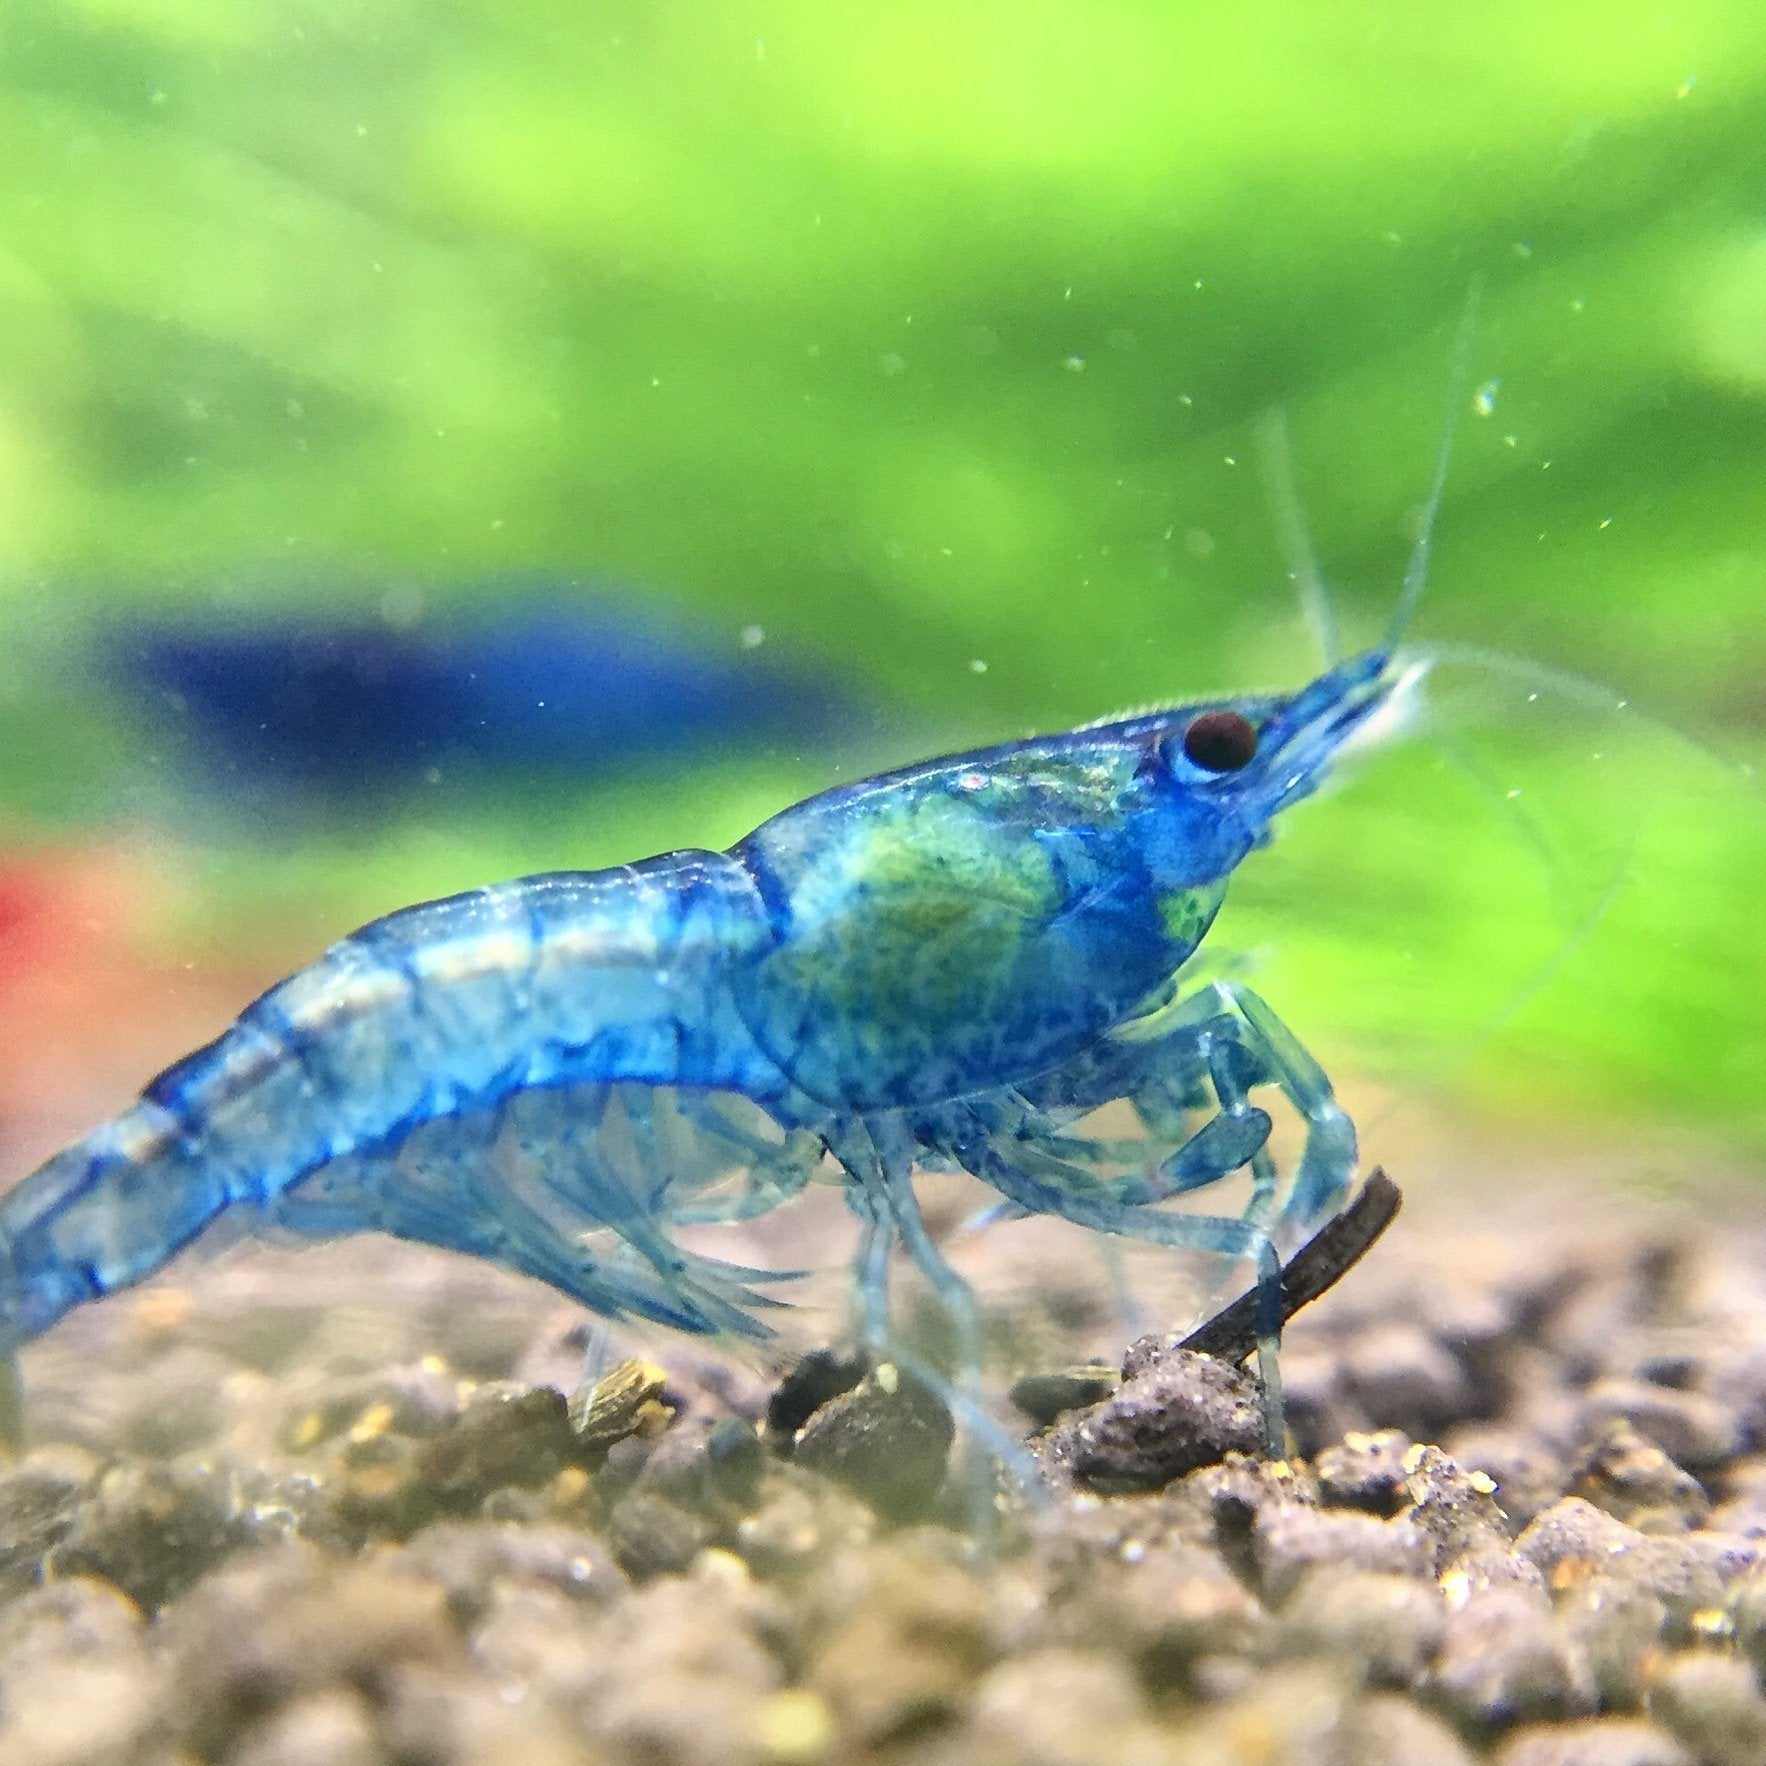 A Beginner's Guide to Keeping Shrimp